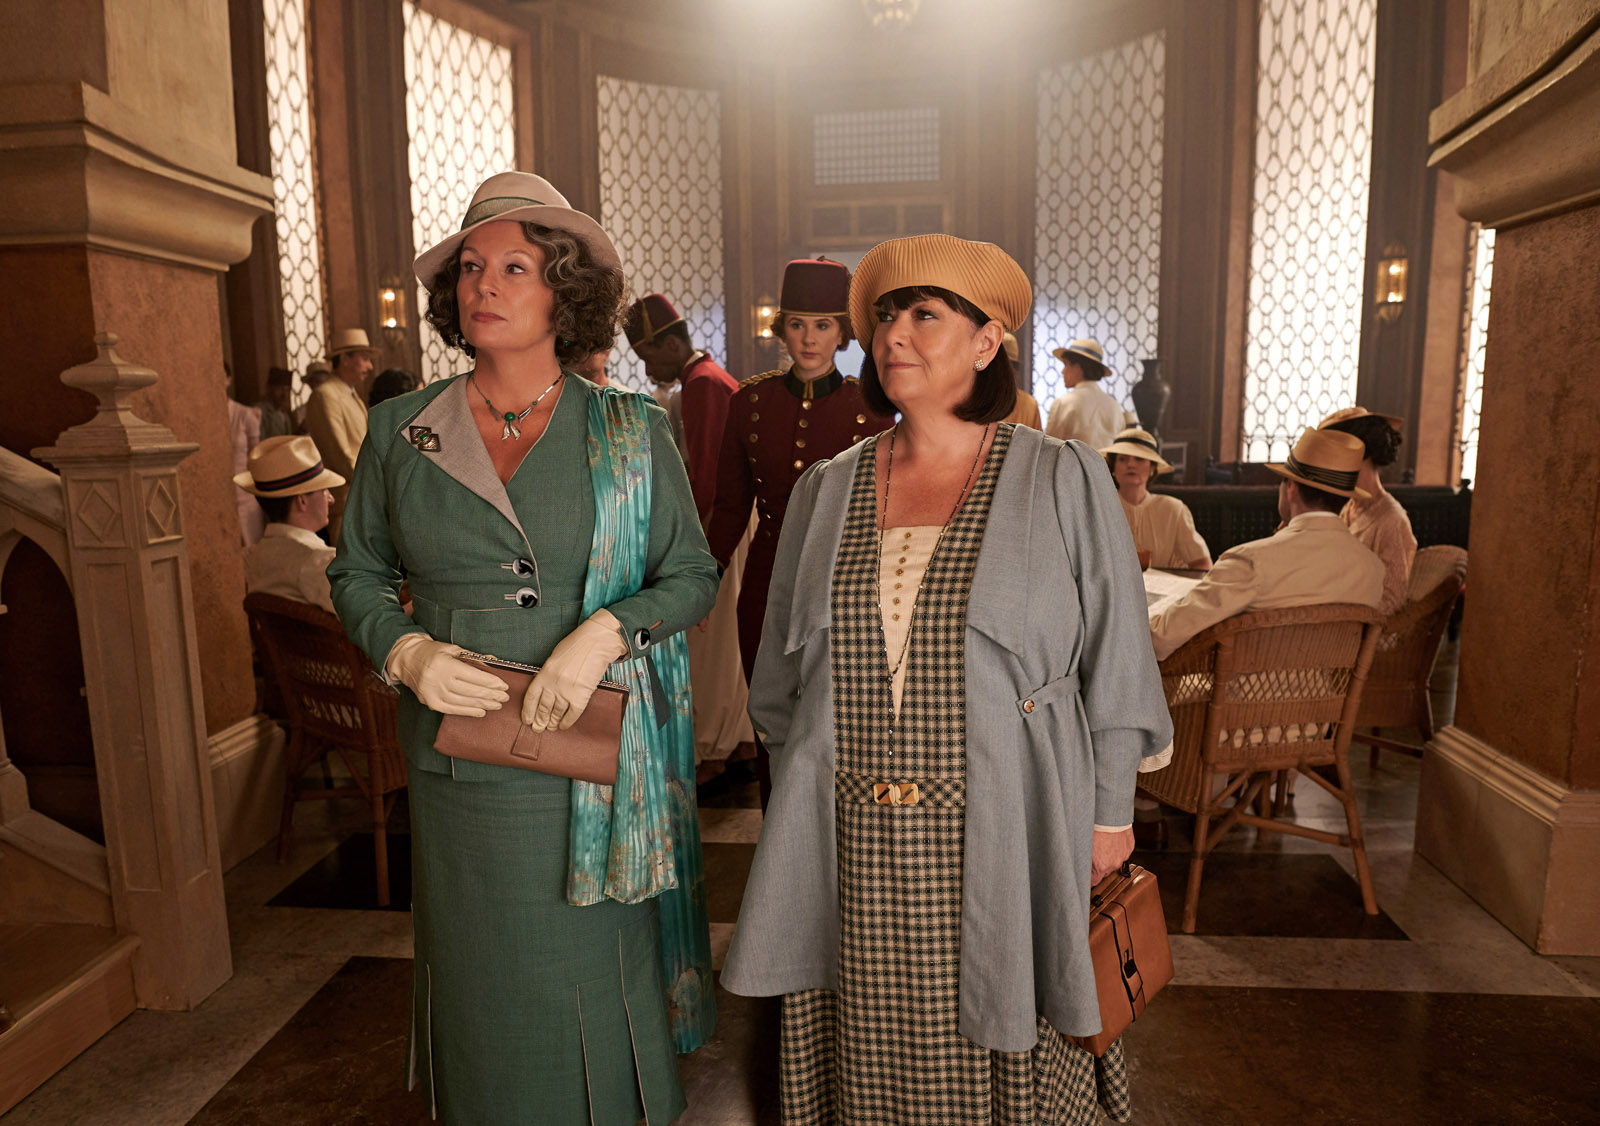 Jennifer Saunders as Marie Van Schuyler and Dawn French as Bowers in 20th Century Studios' DEATH ON THE NILE, a mystery-thriller directed by Kenneth Branagh based on Agatha Christie's 1937 novel. Photo by Rob Youngson. © 2020 Twentieth Century Fox Film Corporation. All Rights Reserved.